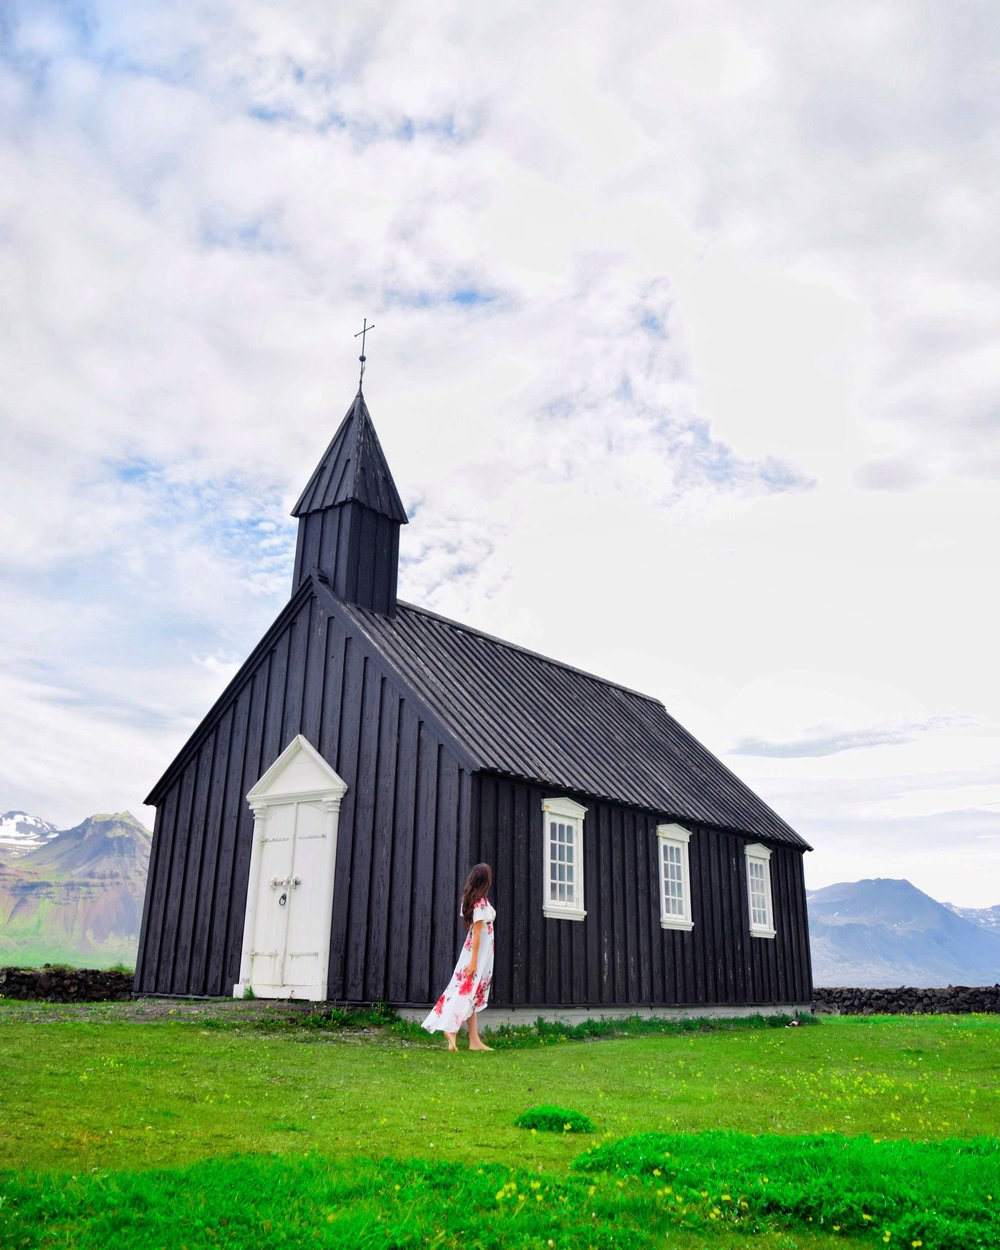 Some of the best sights in Iceland are the black churches